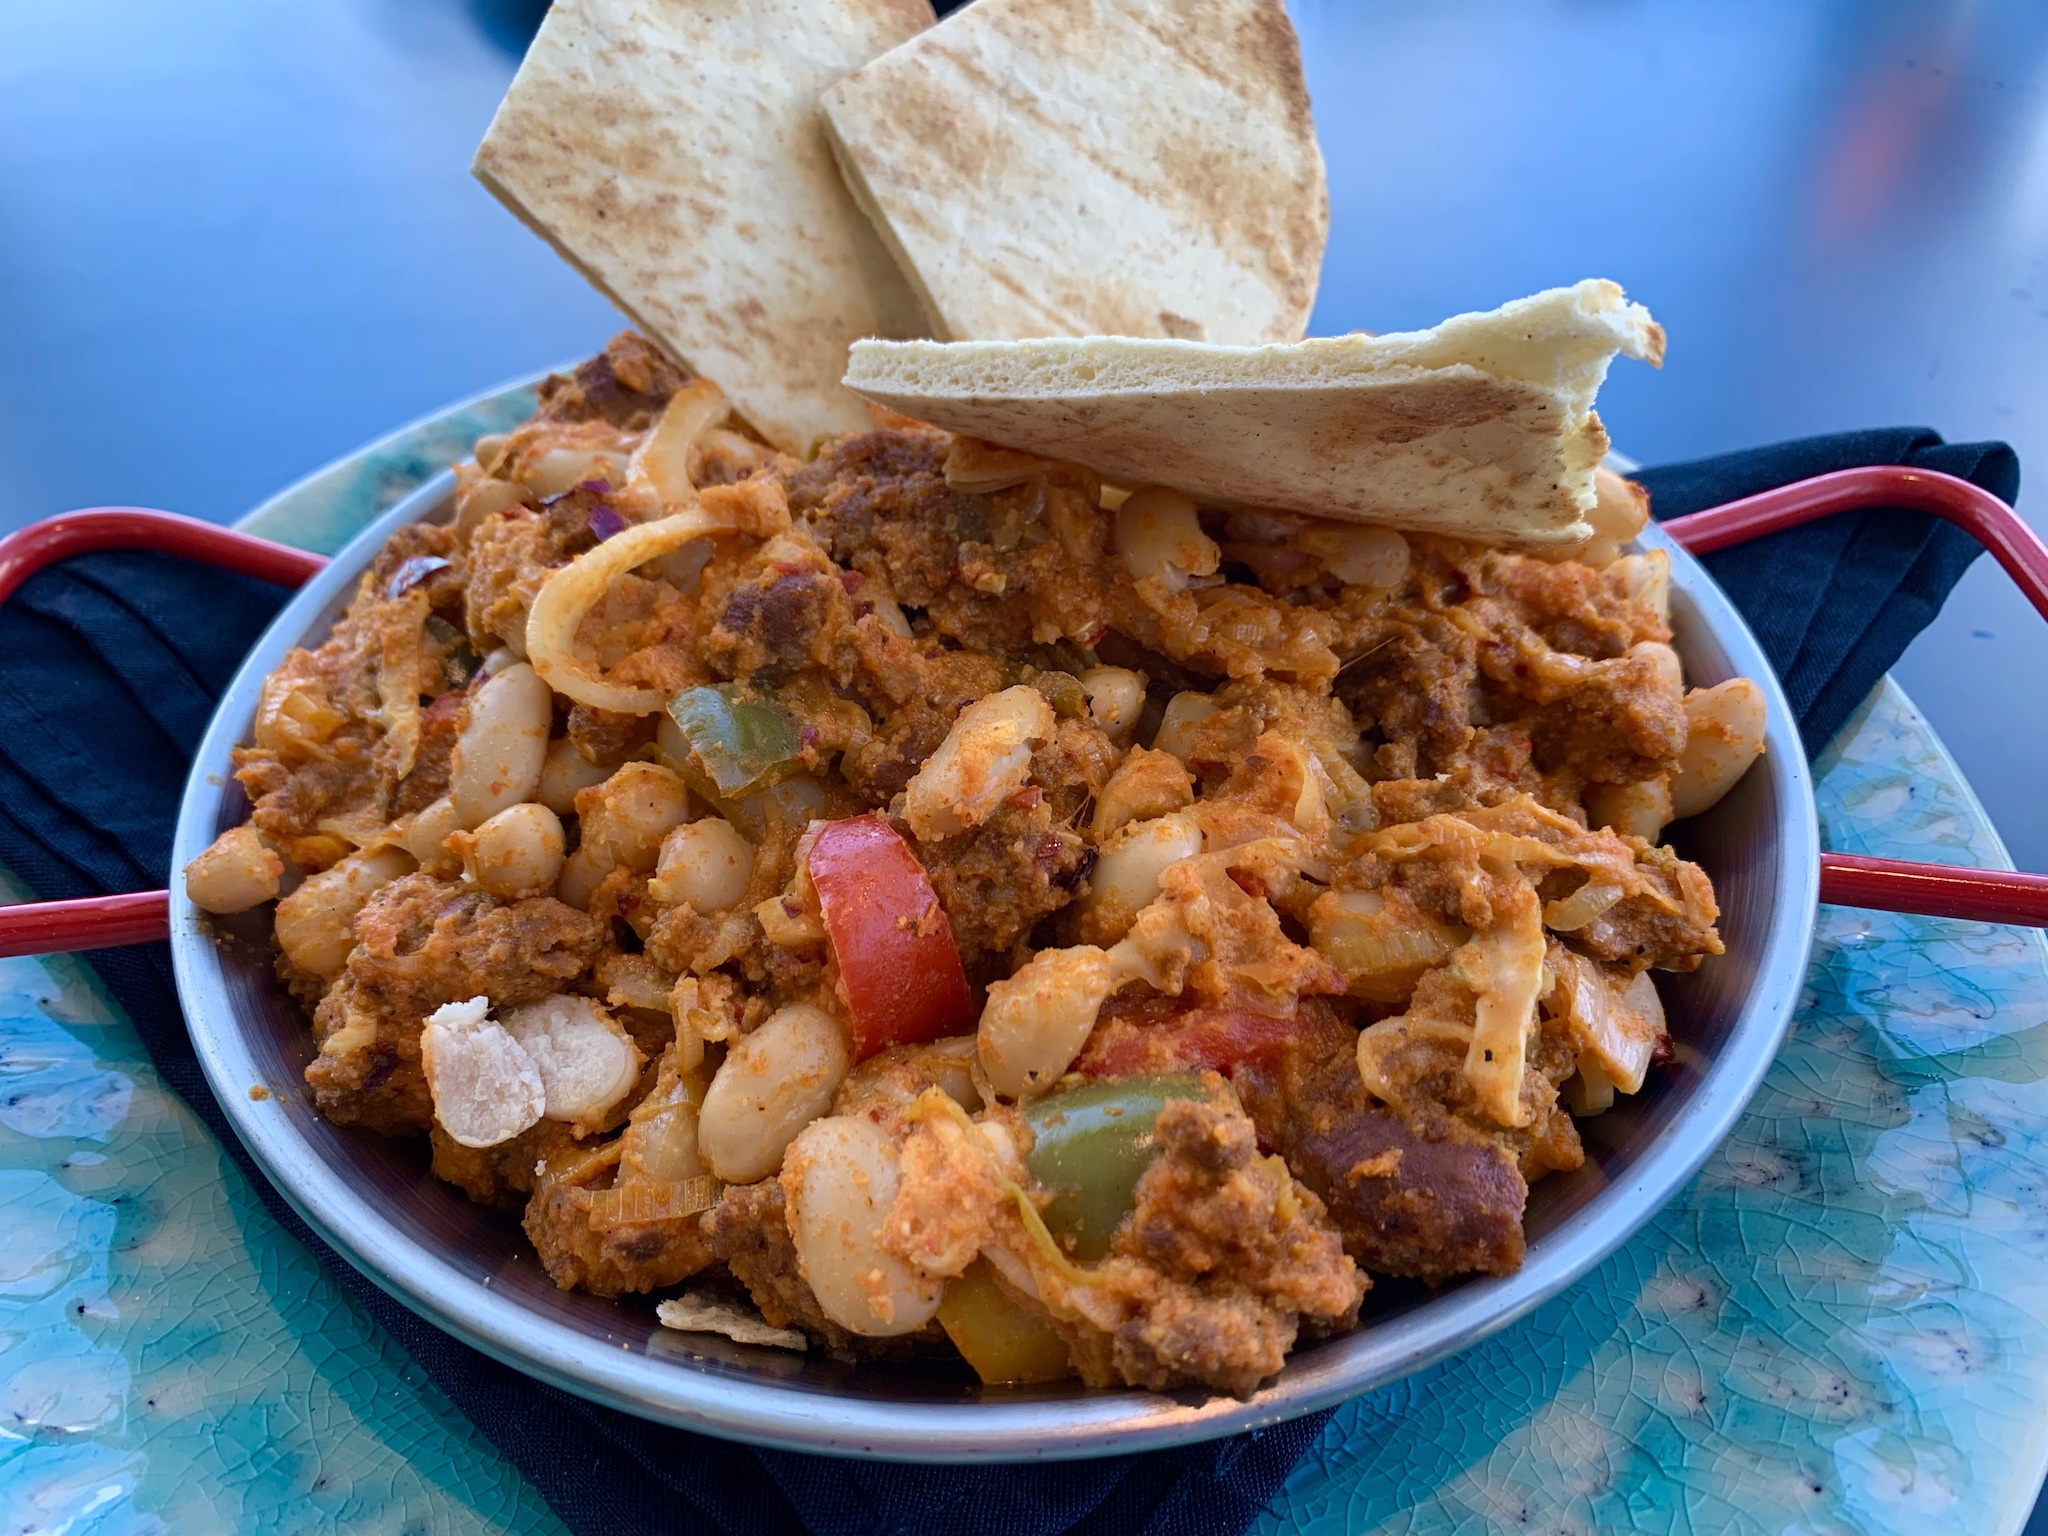 Teak at the St Pete Pier - Spanish Chorizo & White Bean Skillet - garlic & peppers, spanish sausage, cannellini beans, fennel, leeks and romesco. Served with pita.